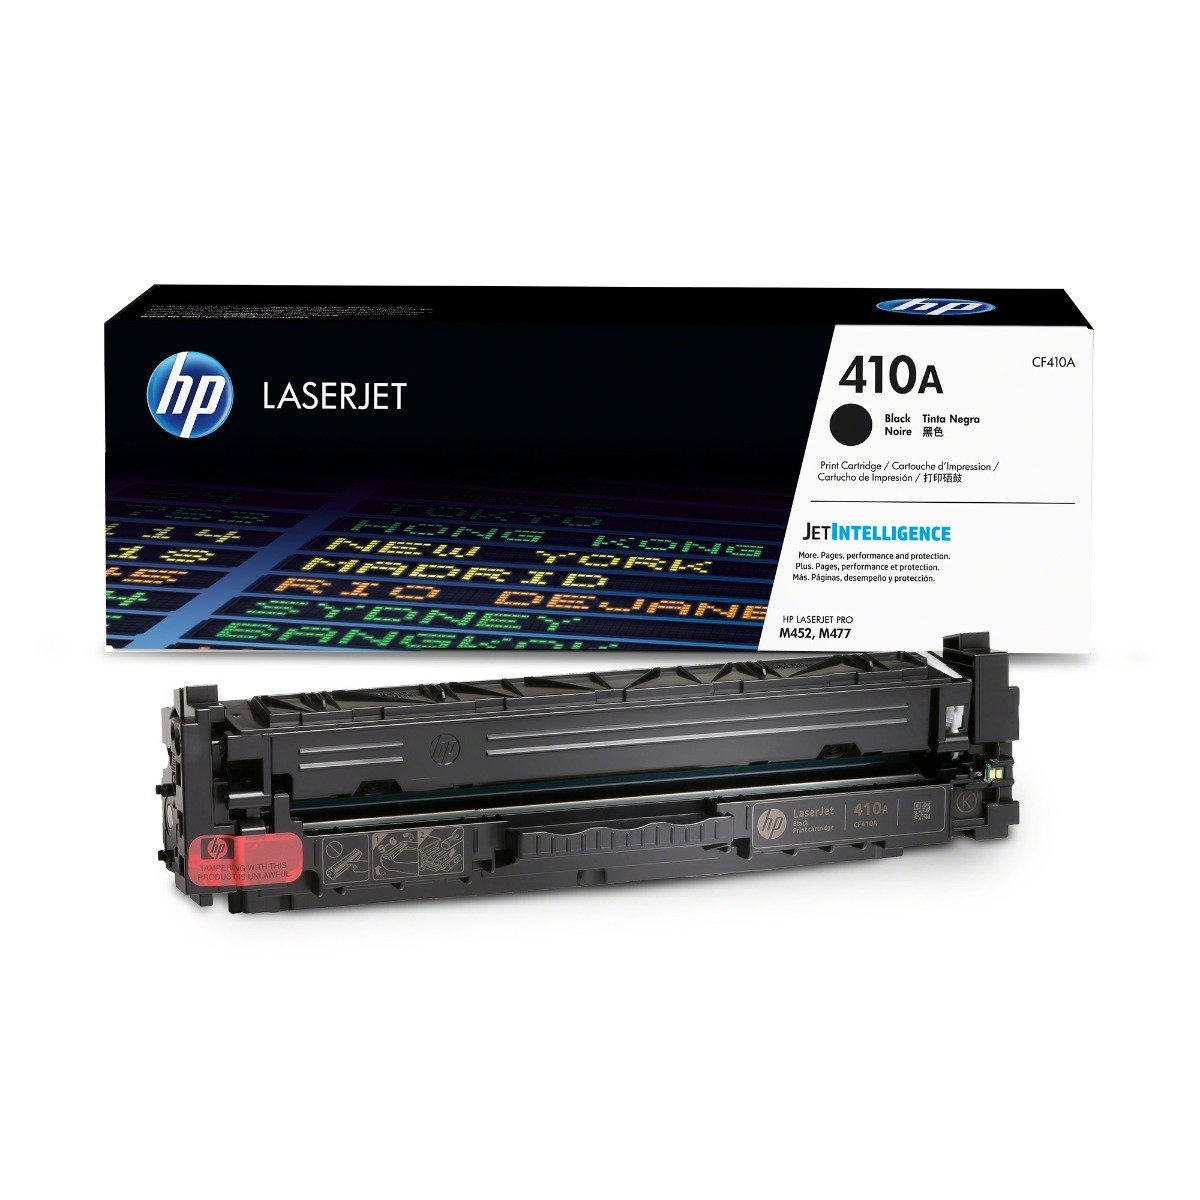 Genuine Black HP 410A Toner Cartridge - (CF410A)